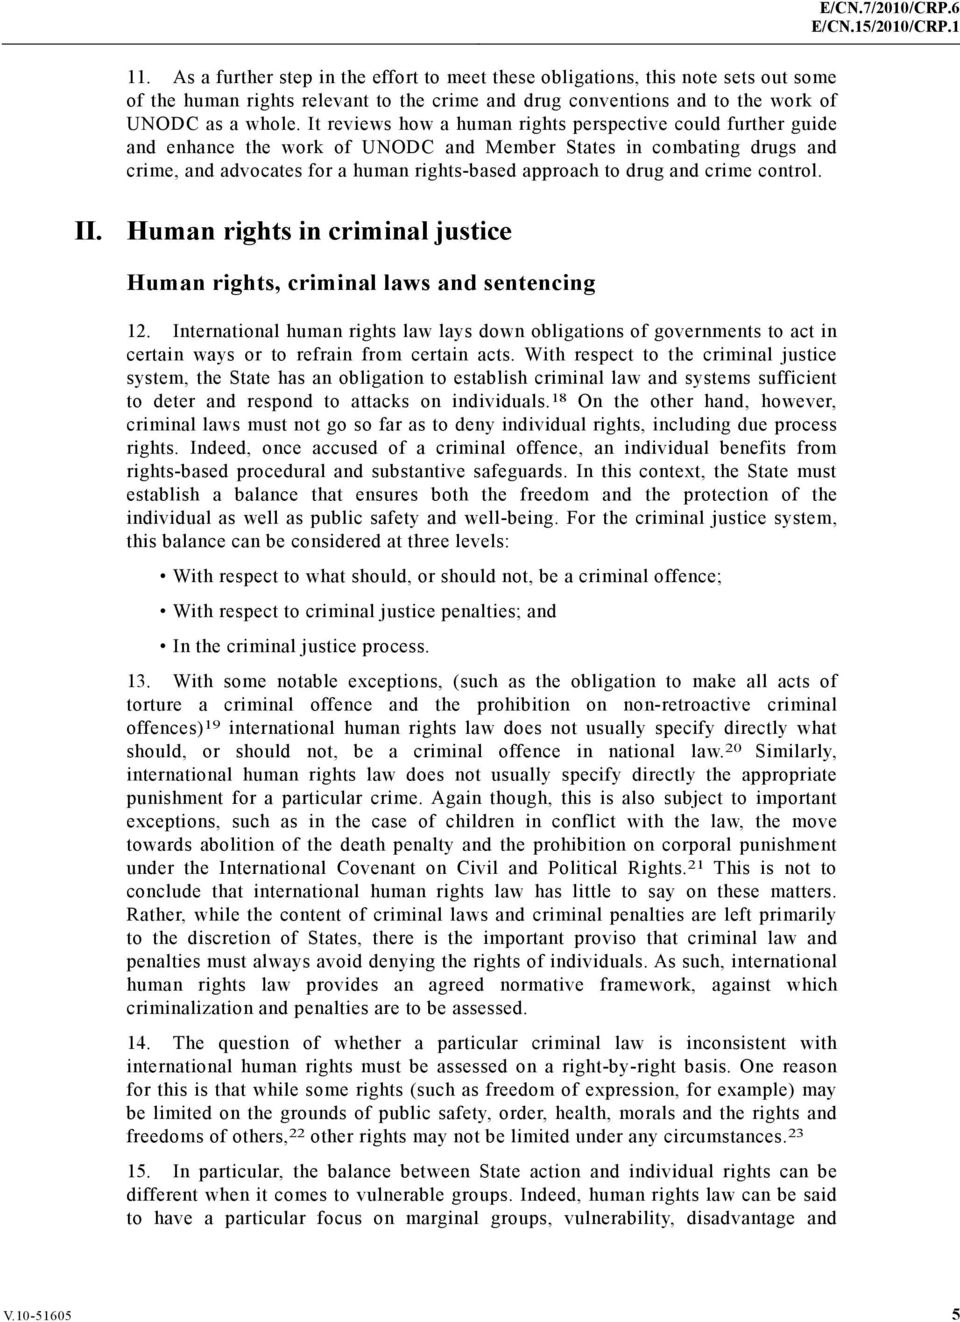 crime control. II. Human rights in criminal justice Human rights, criminal laws and sentencing 12.